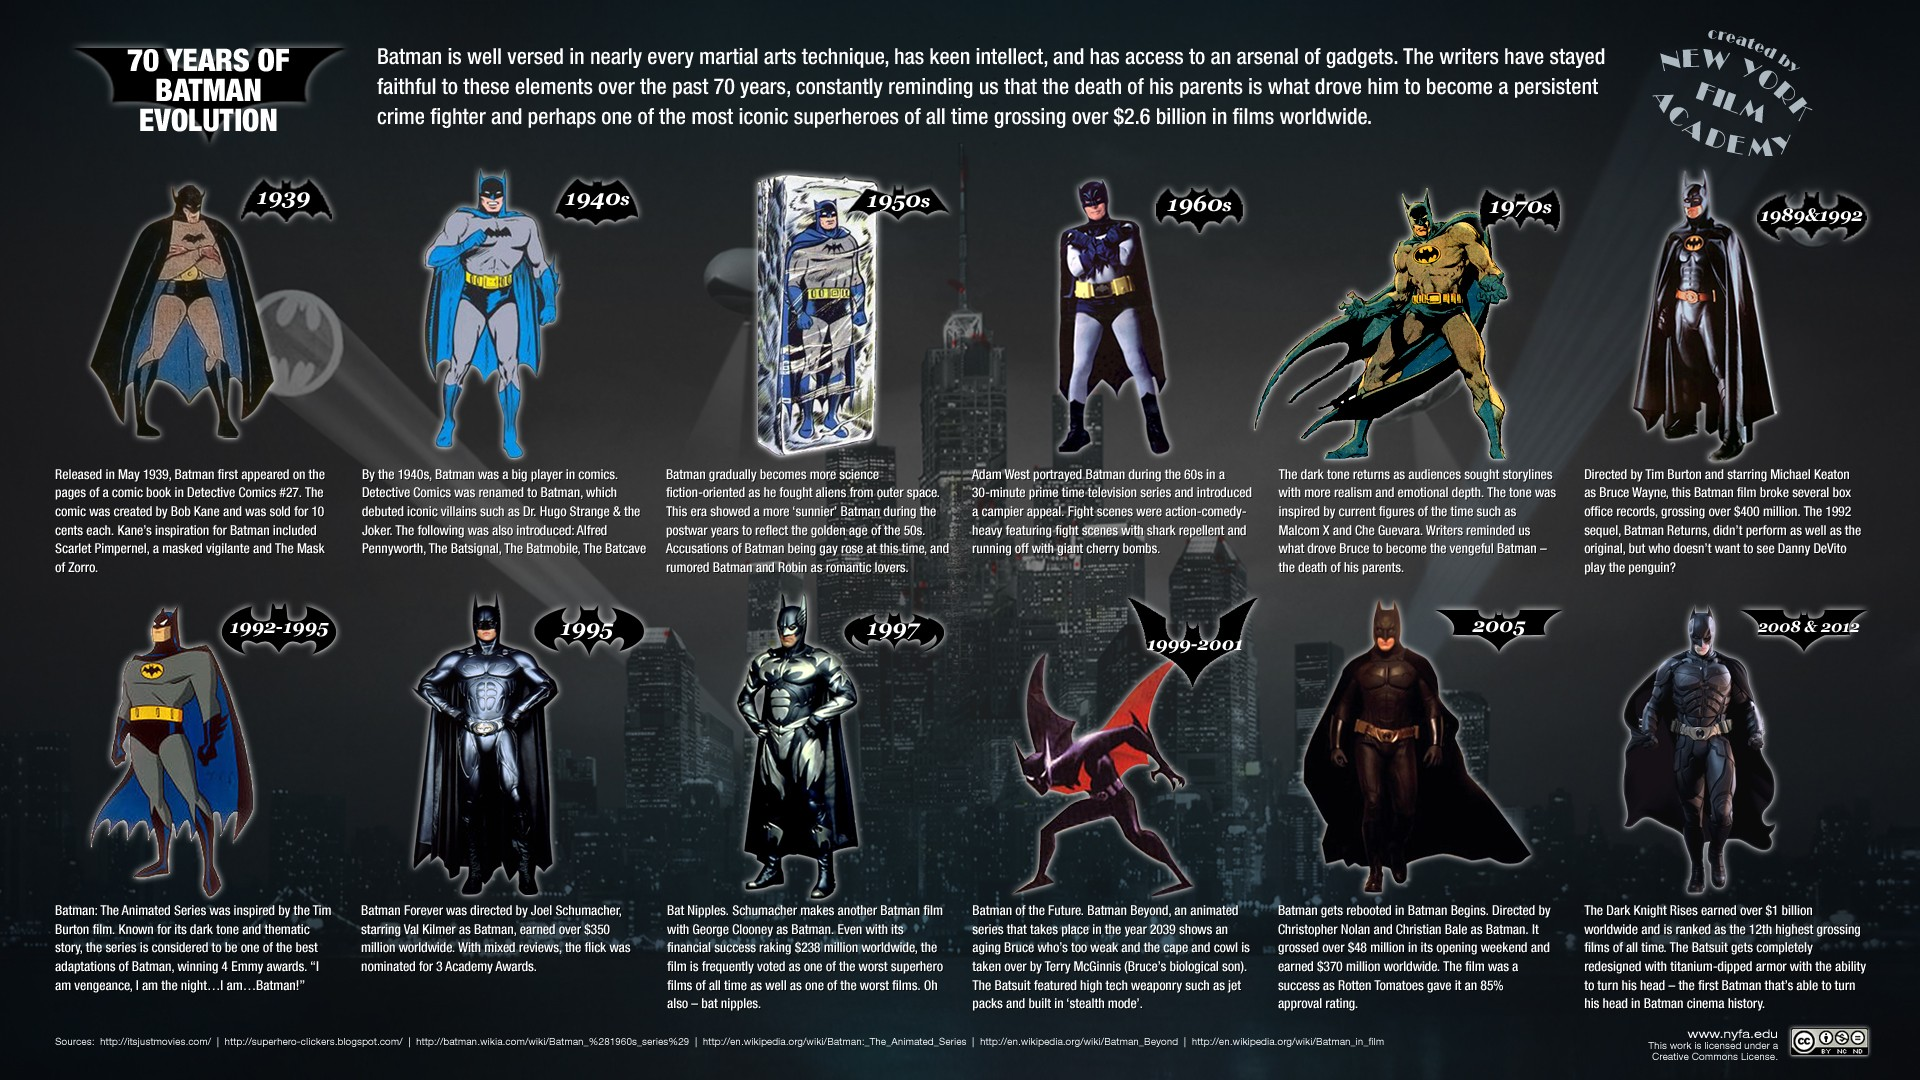 Evolution-of-almost-all-Batman-characters-over-years-Focus-on-Batman-wallpaper-wp3005420